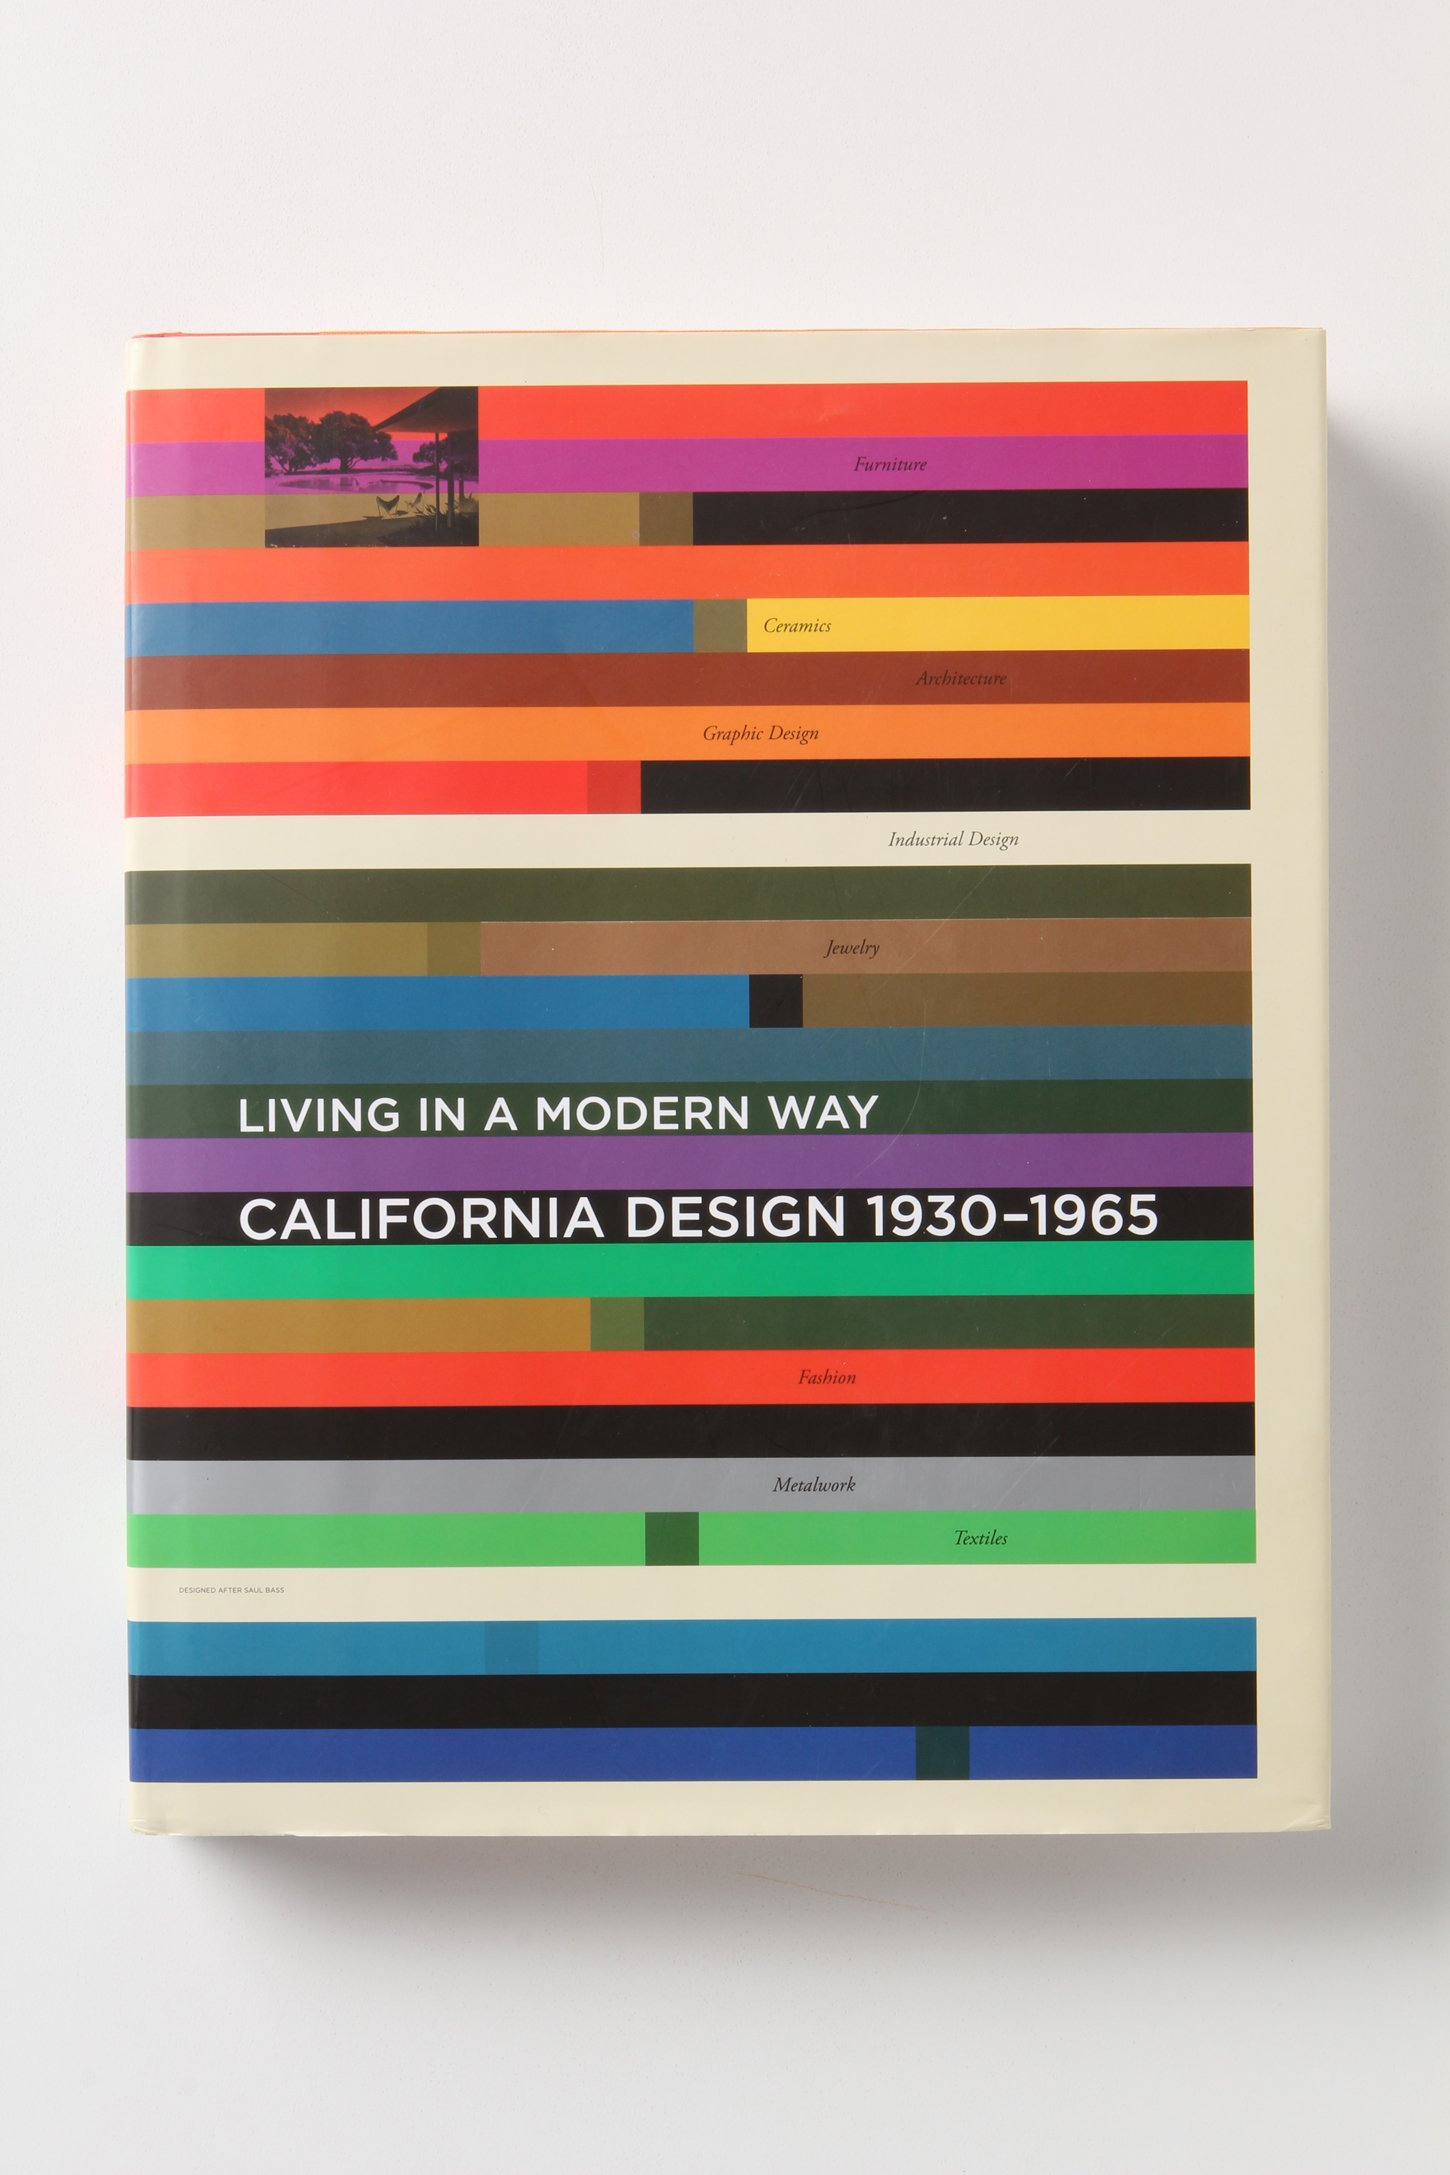 Living In A Modern Way: California Design 1930-1965